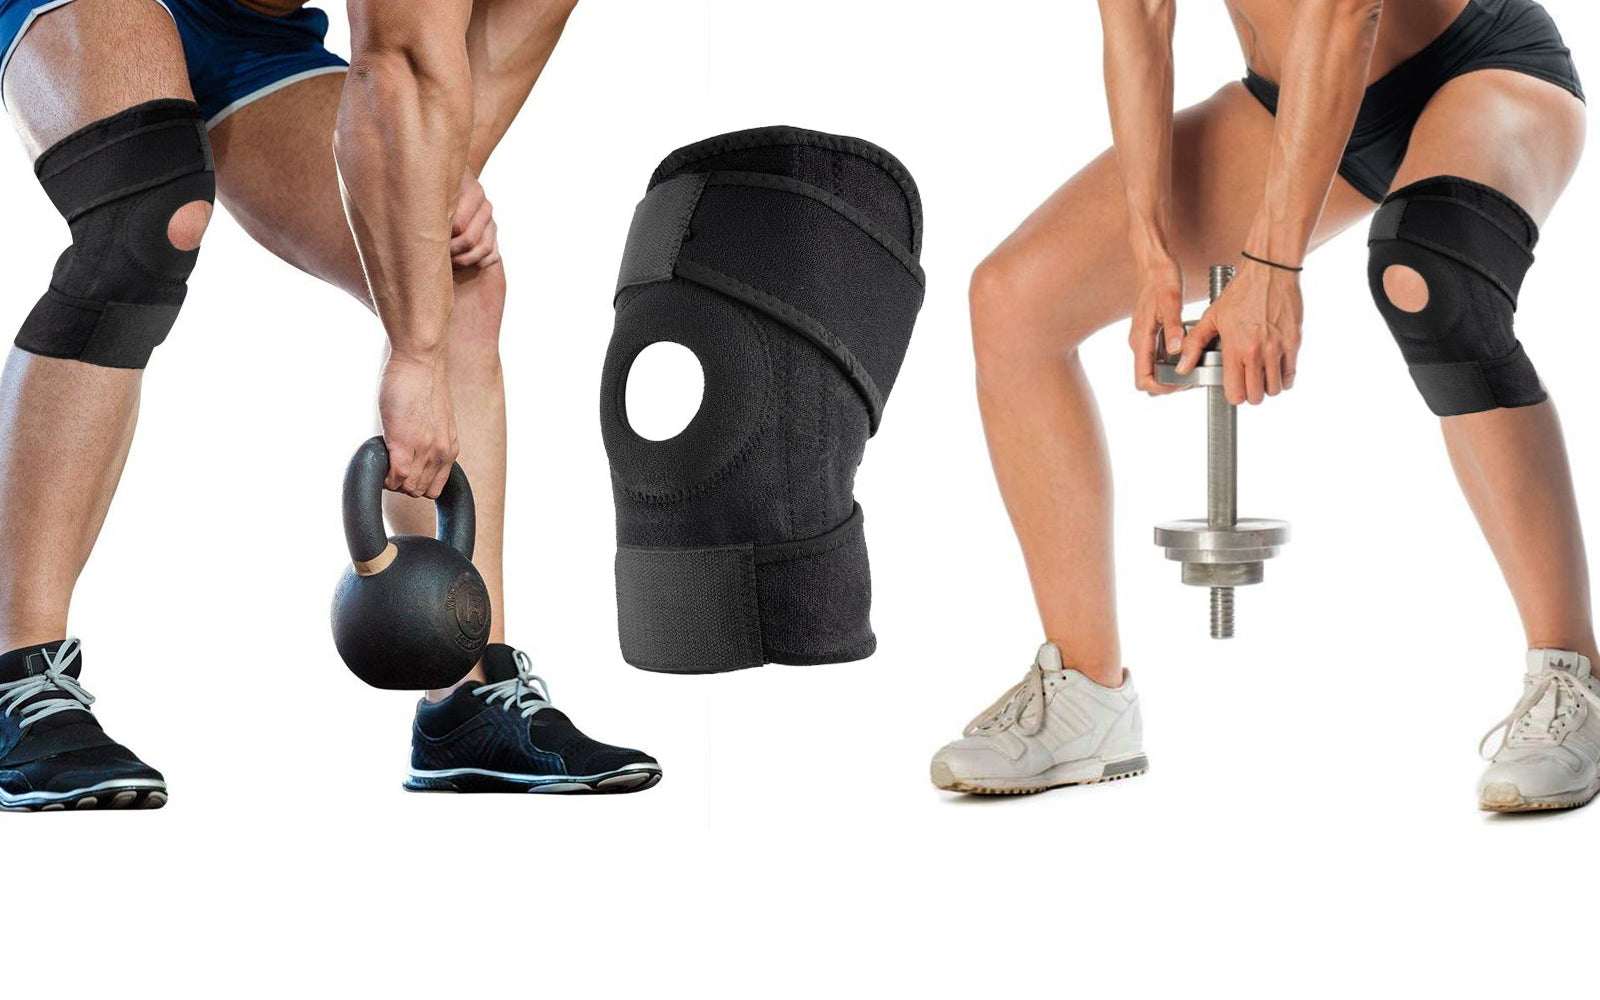 1-Pack or 2-Pack : Copper Infused Knee Support Sports Wrap